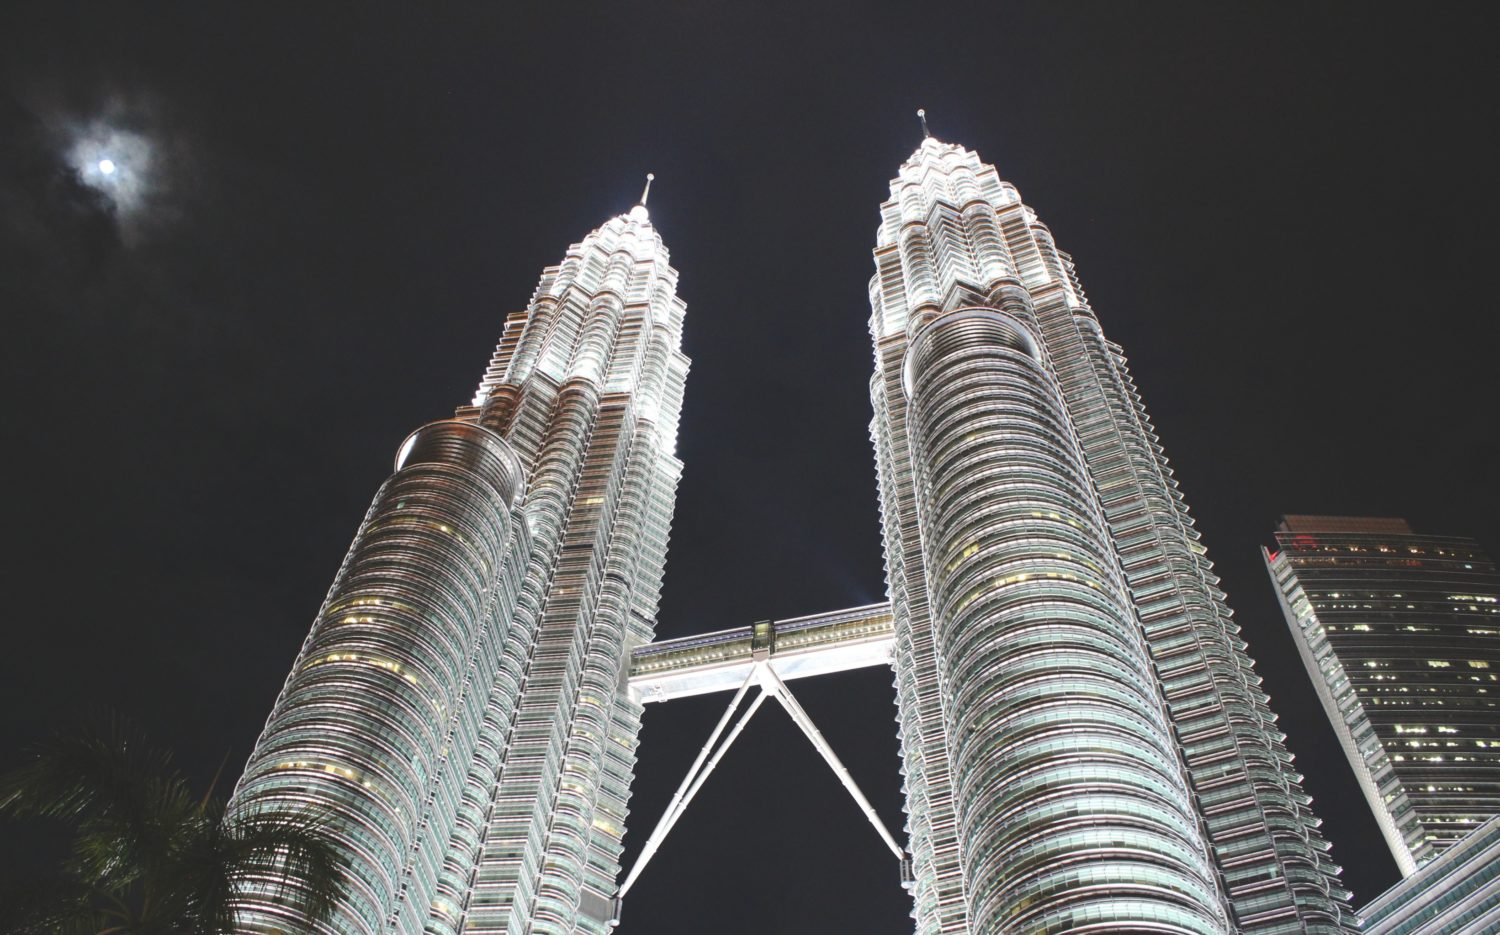 Looking for budget accommodation in Kuala Lumpur? Check out Maggie's review of Irsia Bnb, and decide if it sounds good for your travels!